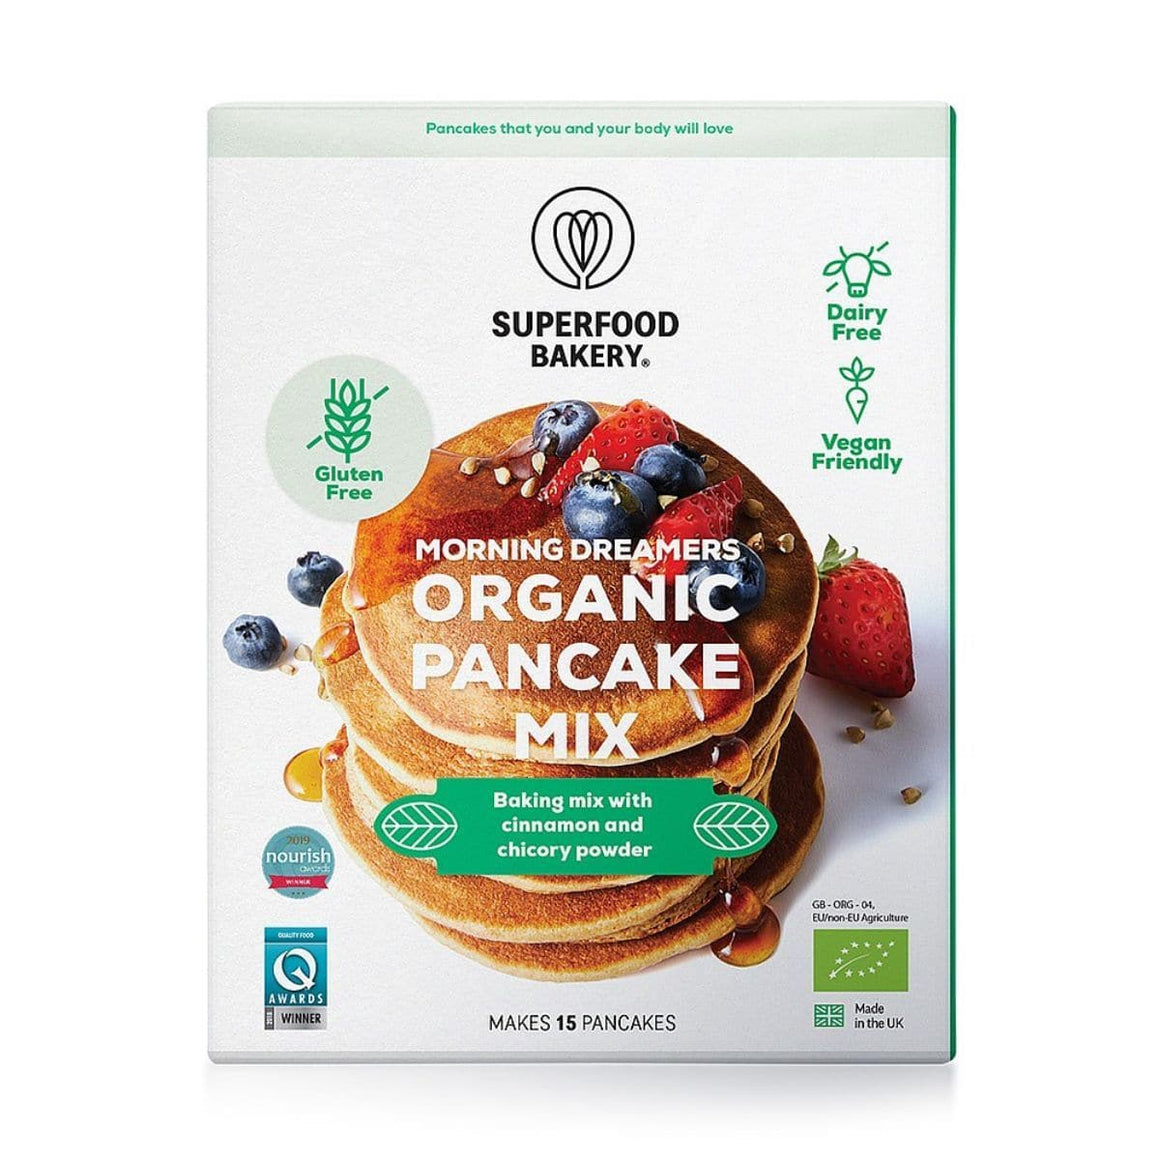 Superfood Bakery Morning Dreamers Organic Pancake Mix - 200g - SoulBia